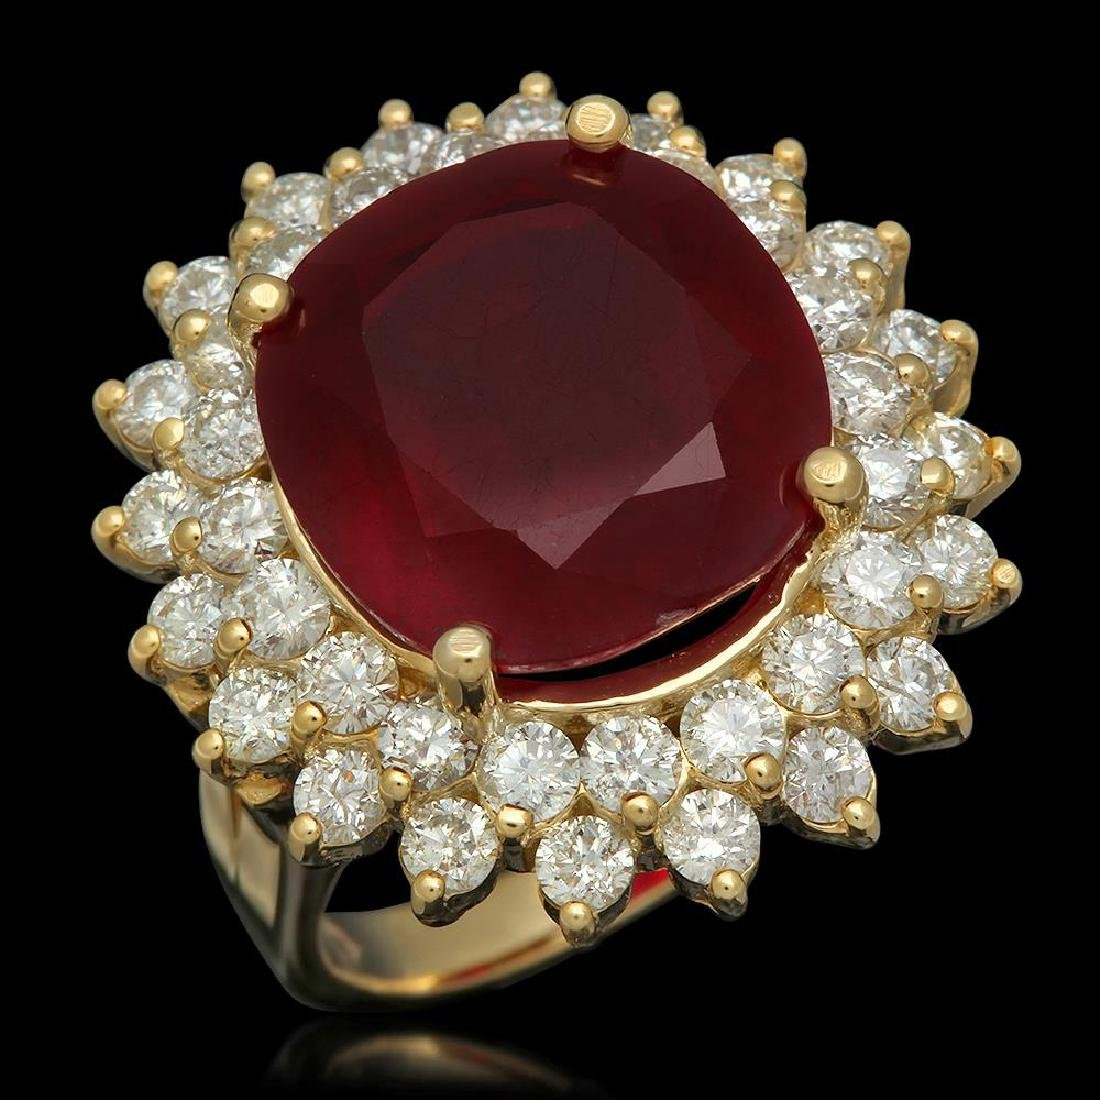 14K Gold 14.38ct Ruby 2.38ct Diamond Ring